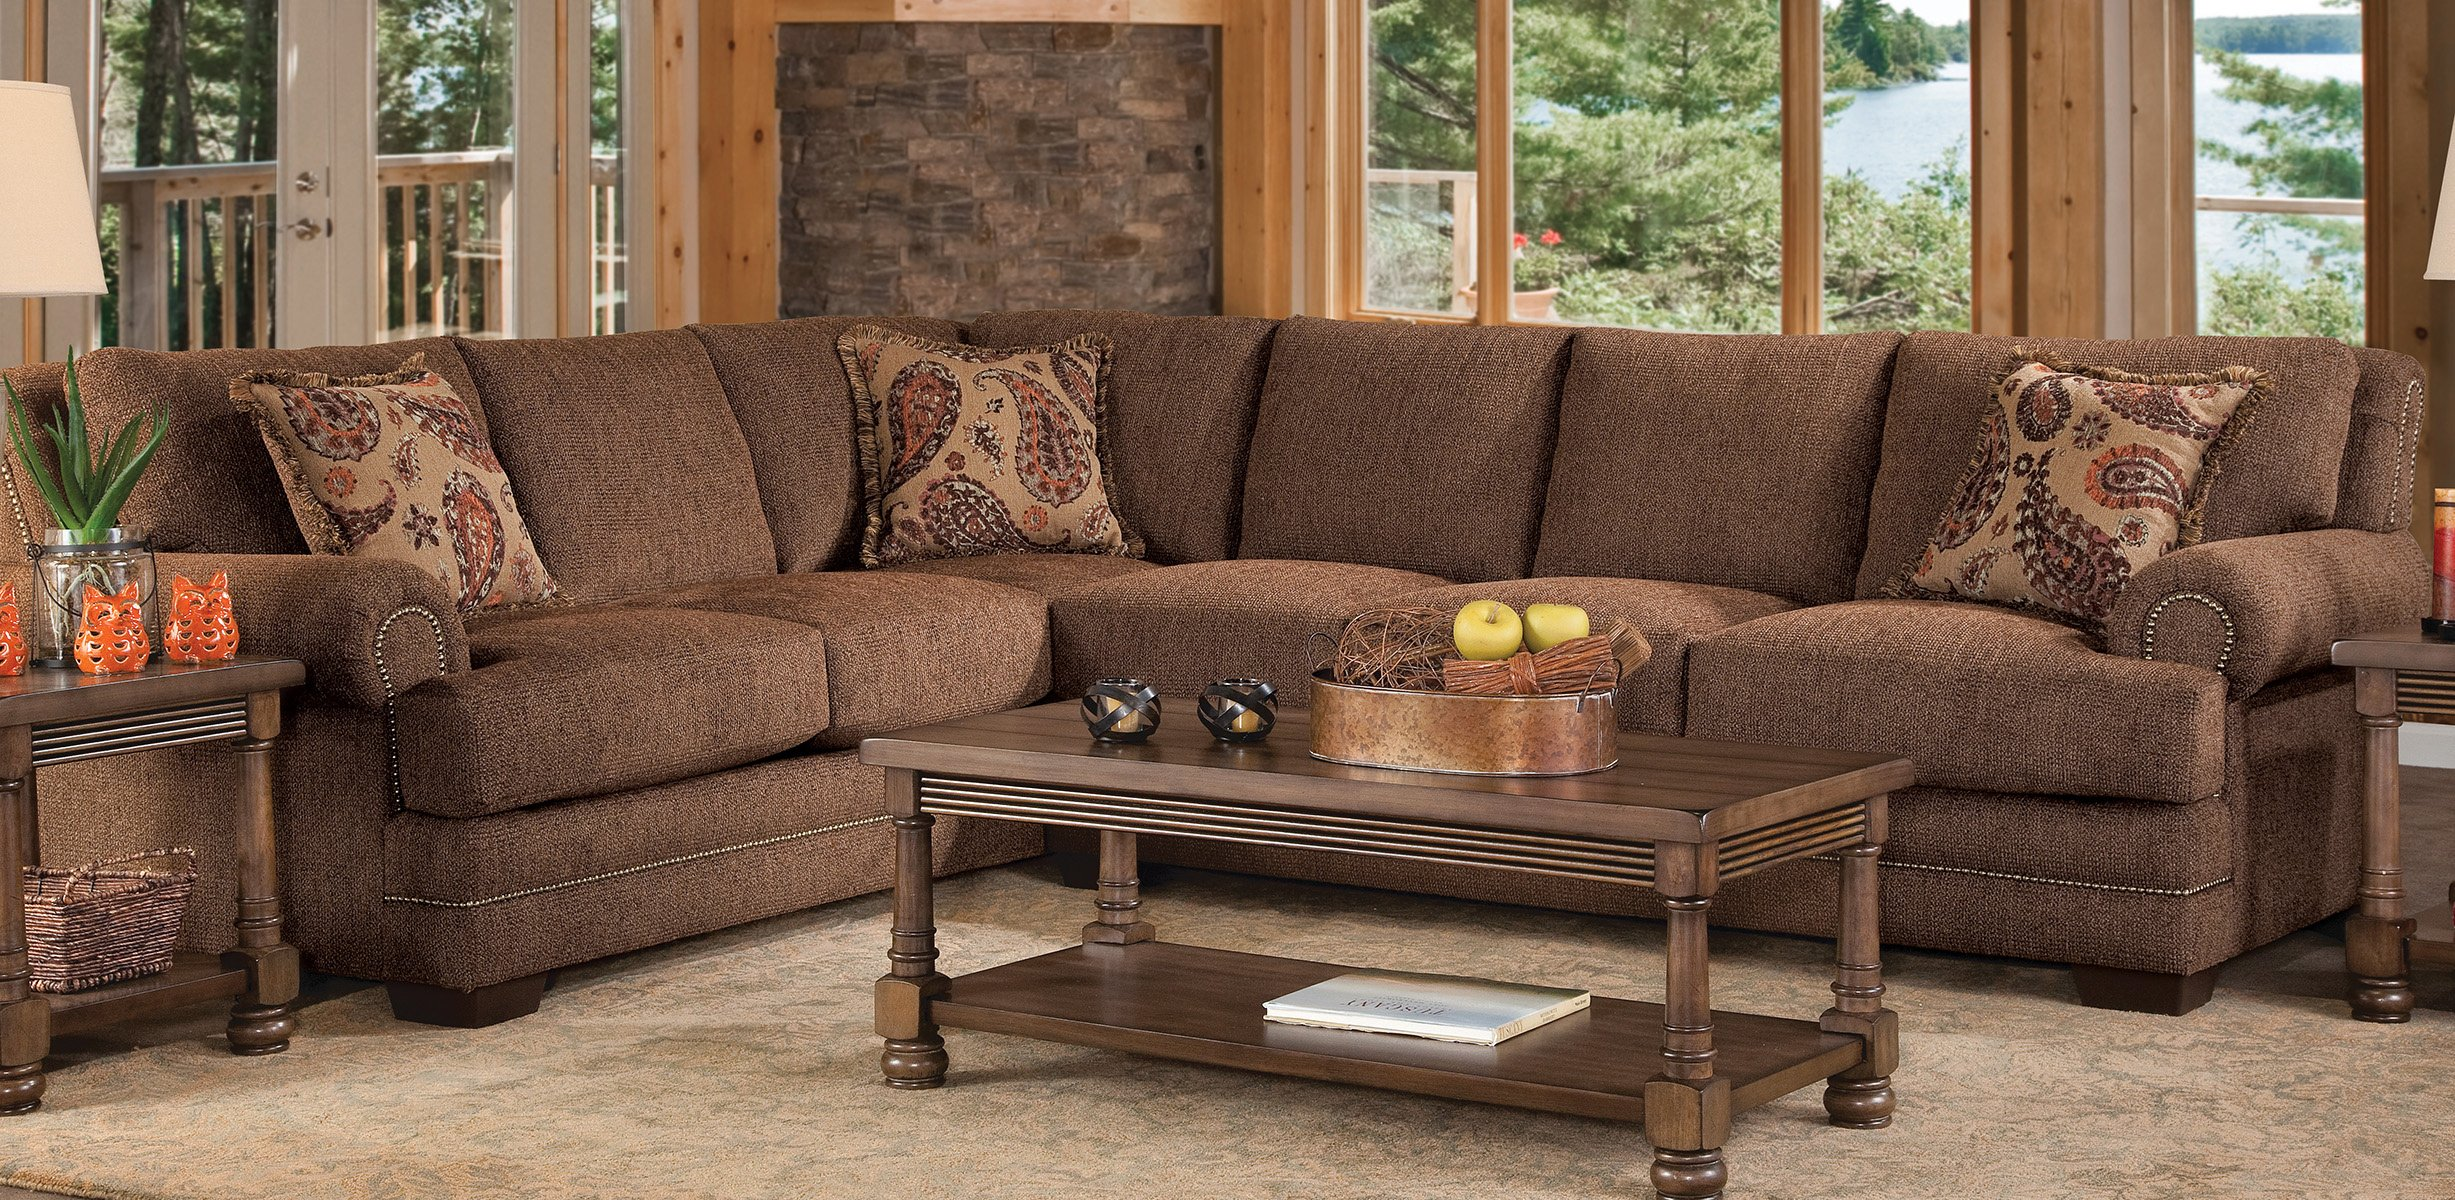 Serta Sectional 9800 Easy Peasy